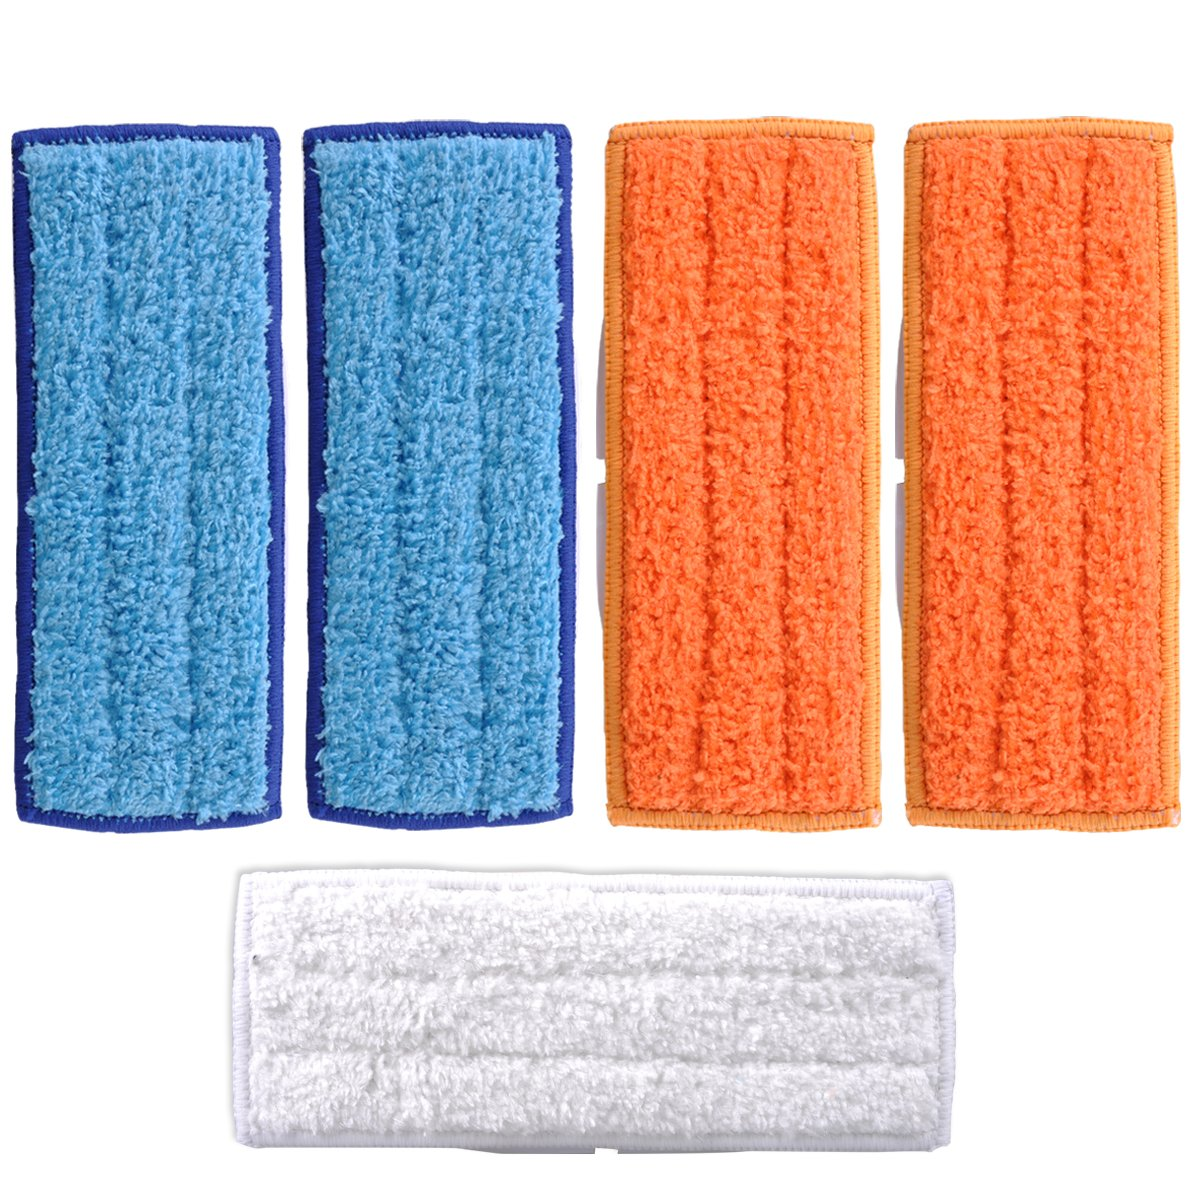 KEEPOW 5 Packs Washable Mopping Pads for iRobot Braava Jet 240 241 SYNCHKG108378